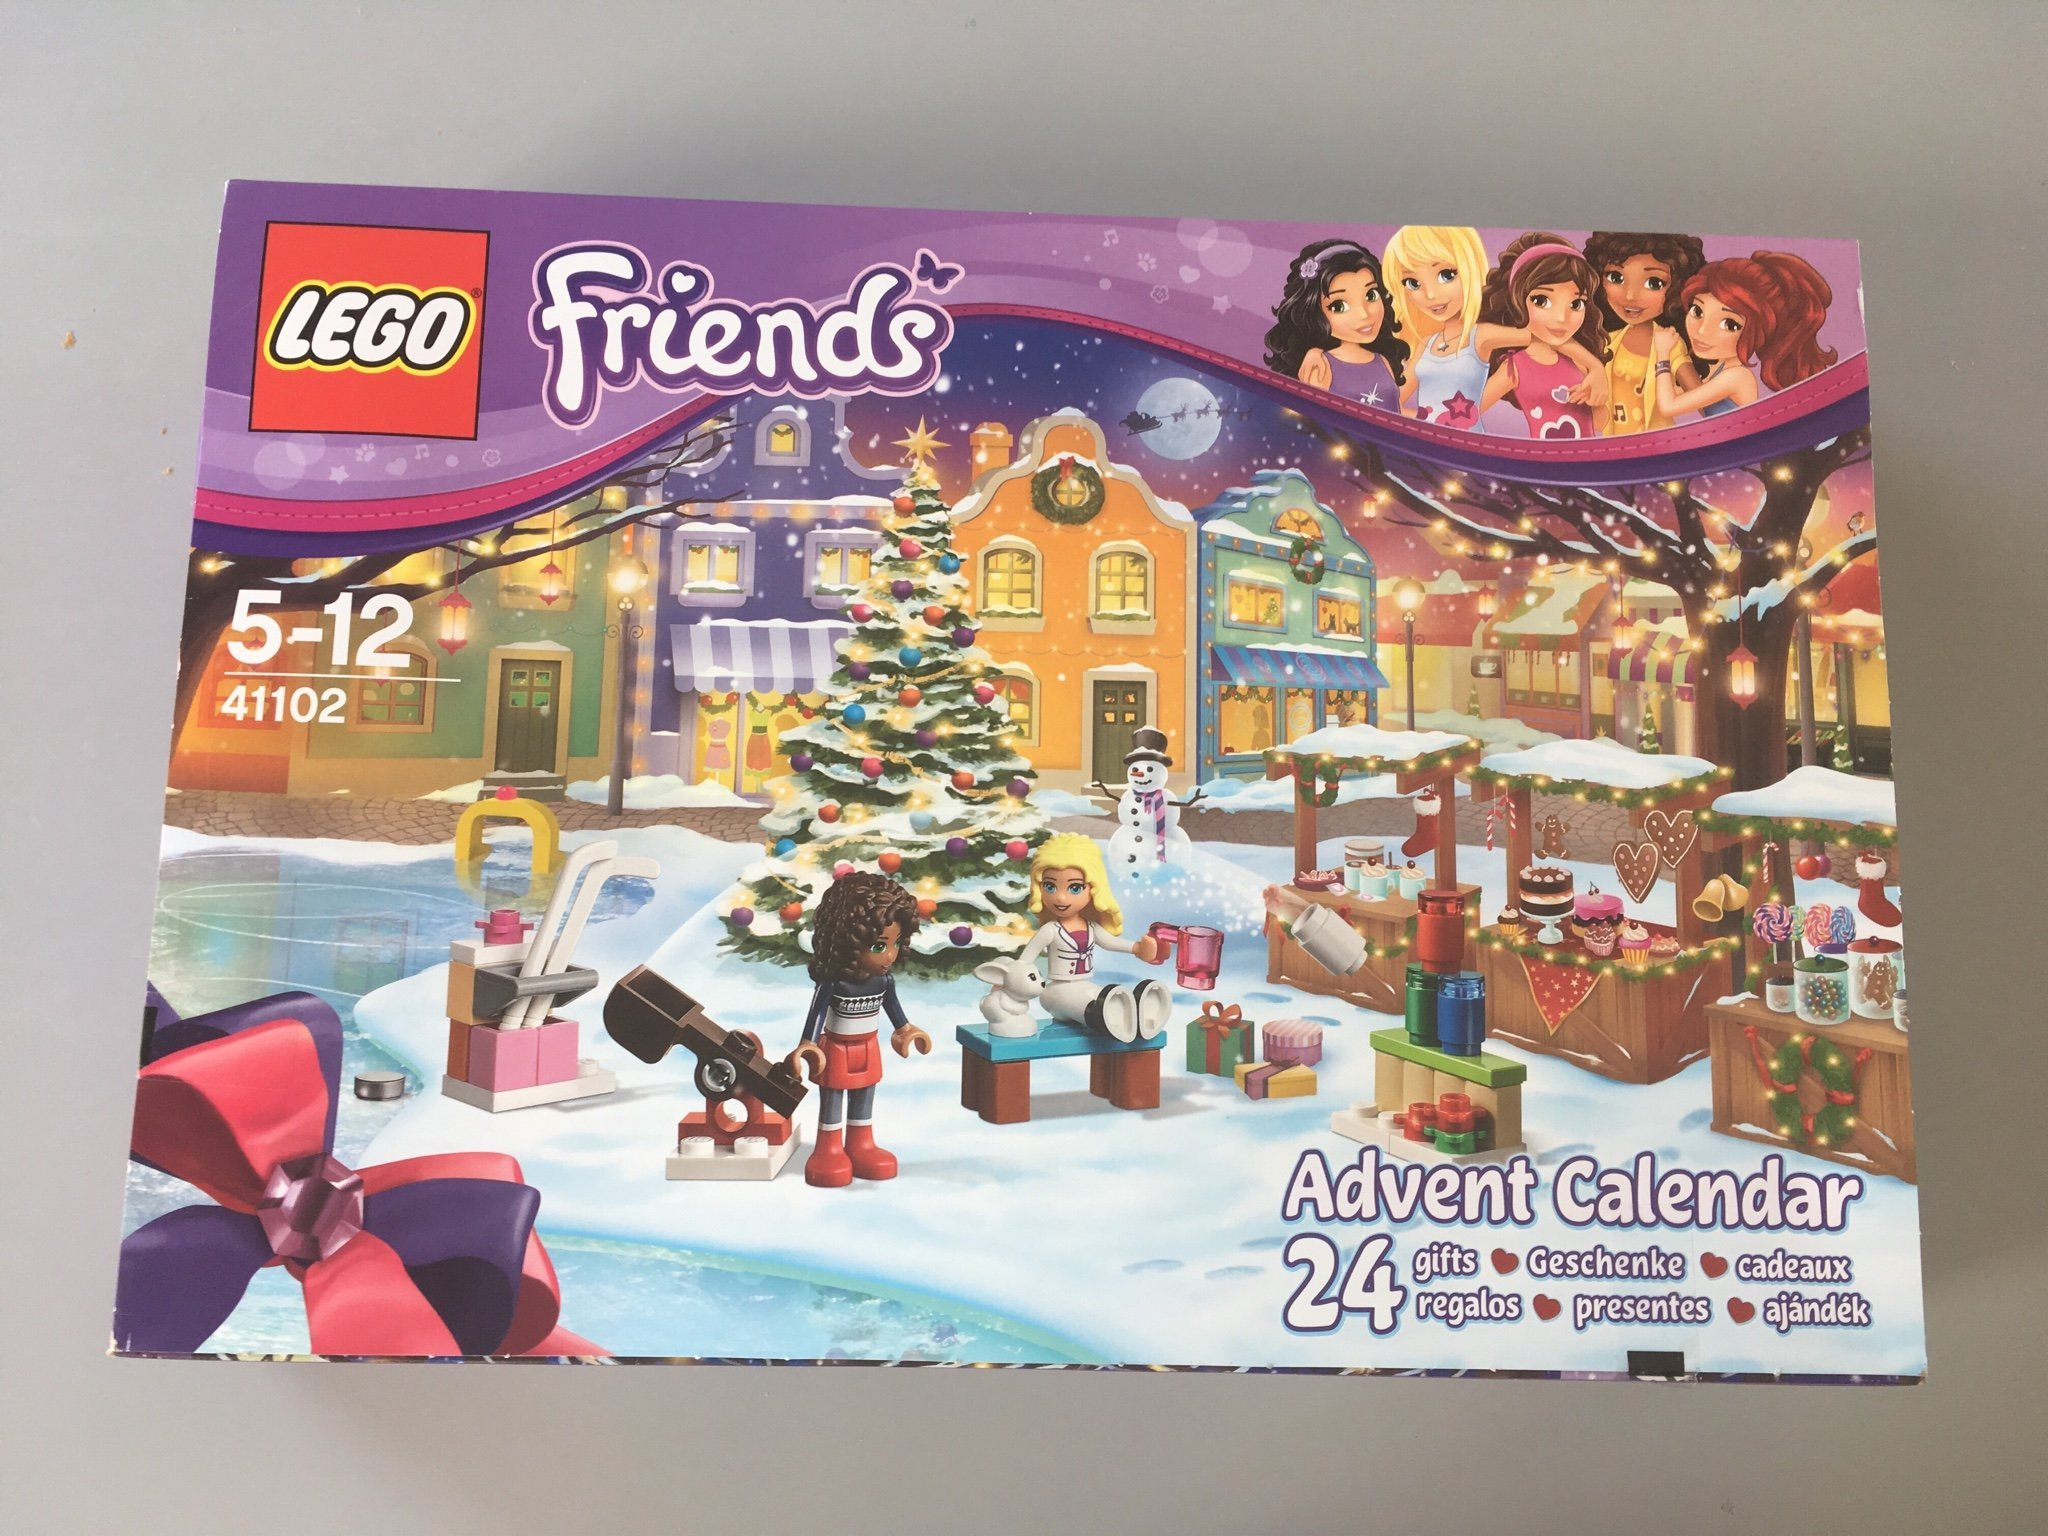 Weihnachtskalender Lego Friends.Ny Lego Friends Adventskalender 2015 41102 358997814 ᐈ Köp På